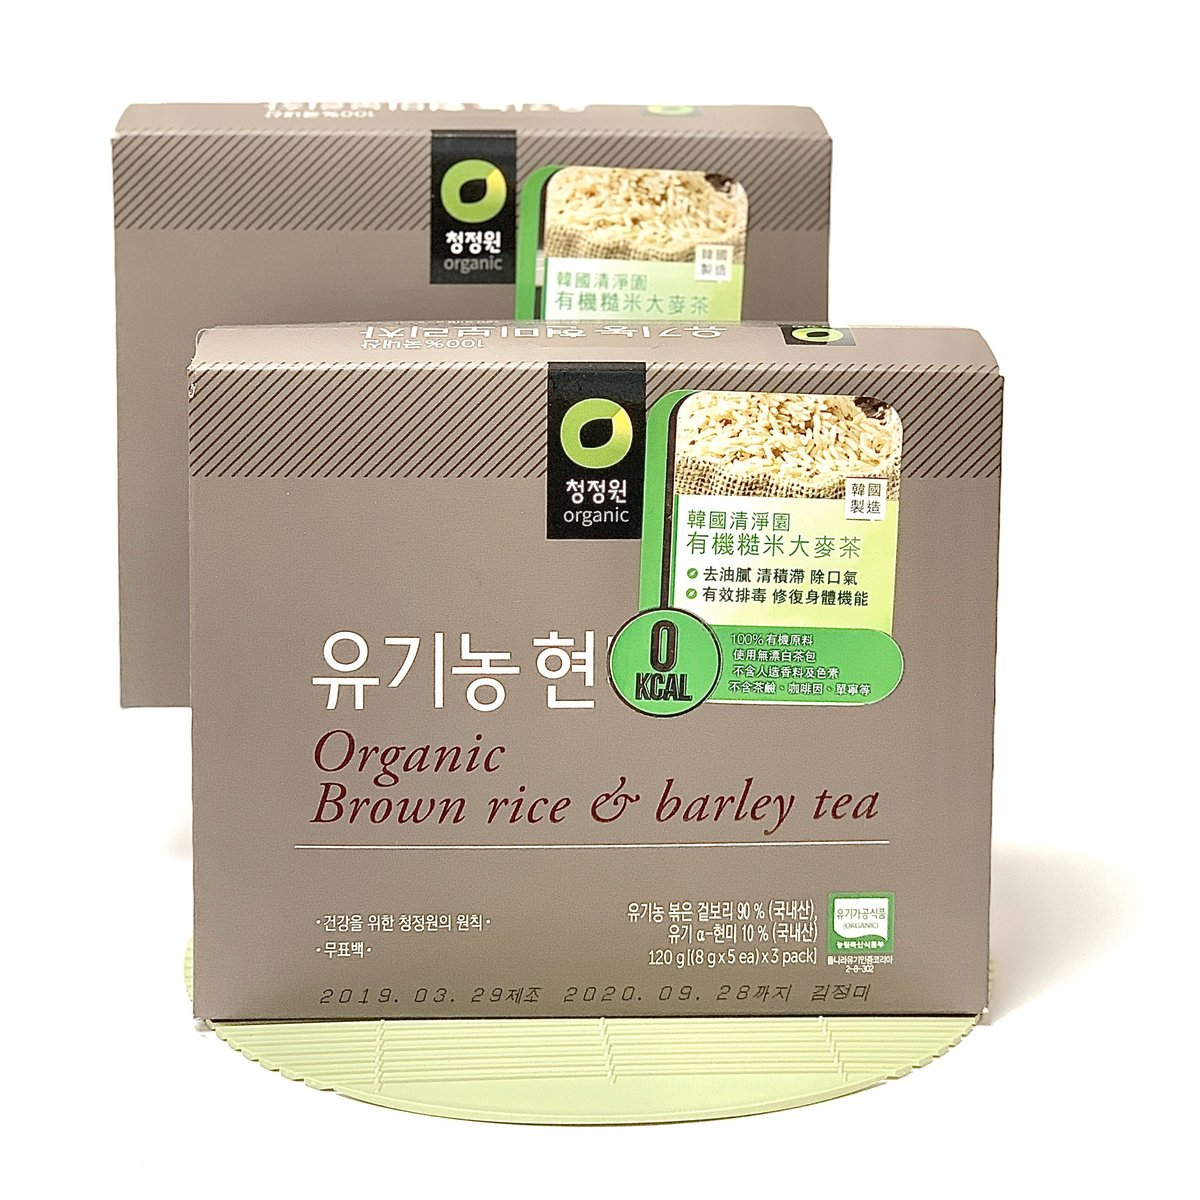 (2 Packs) Organic Brown Rice & Barley Tea《孖裝》有機糙米大麥茶(T085)